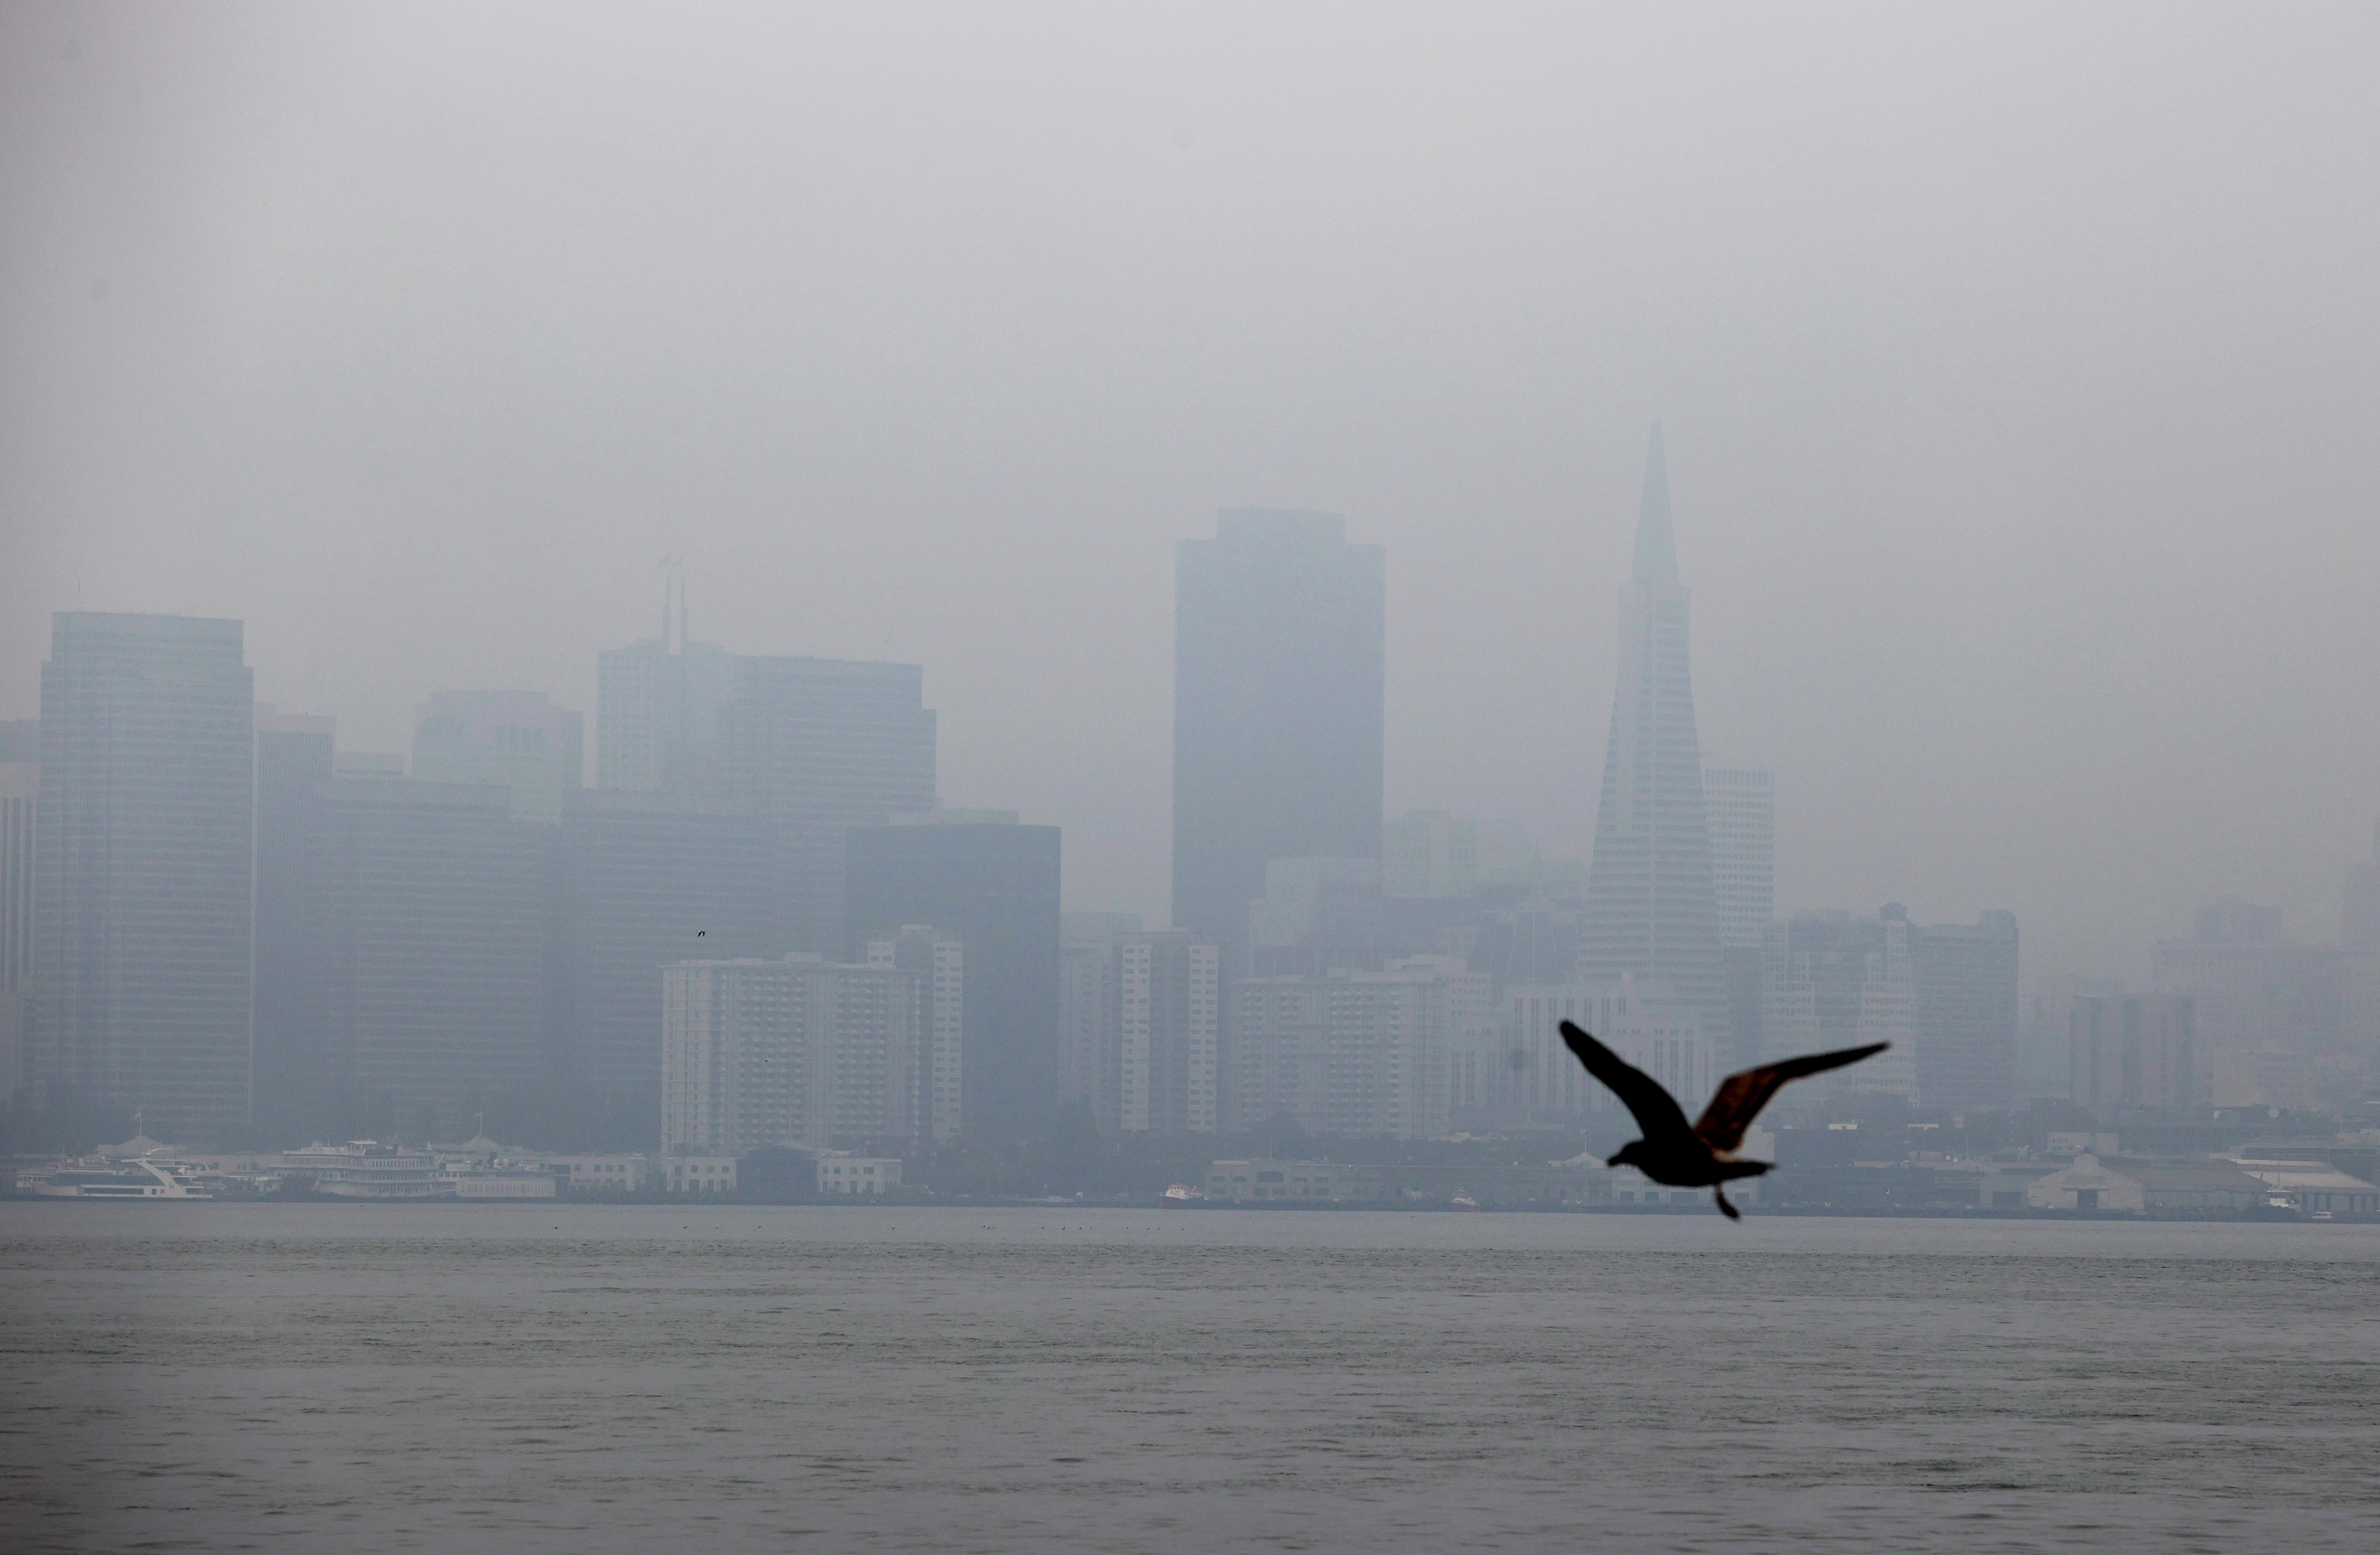 The San Francisco skyline is barely visible through hazy and smoky conditions on Sept. 3, 2020, due to smoke from wildfires raging in California.